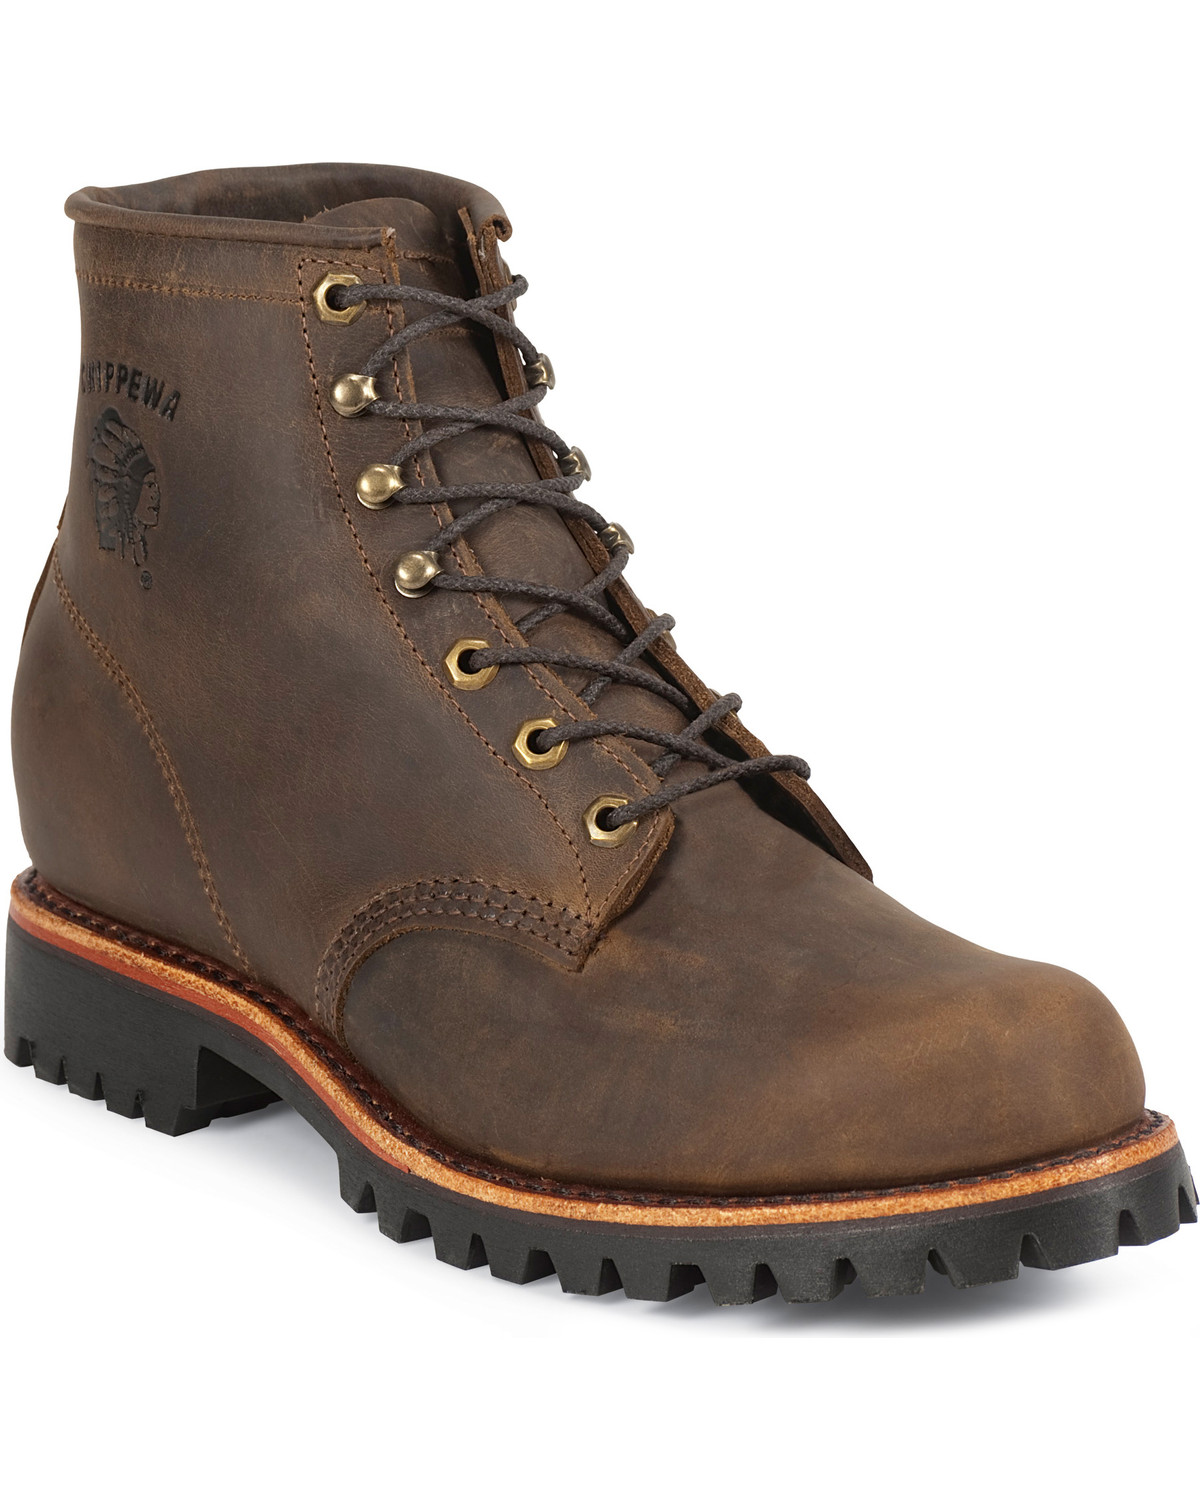 Chippewa Men S Utility 6 Quot Lace Up Work Boots Boot Barn